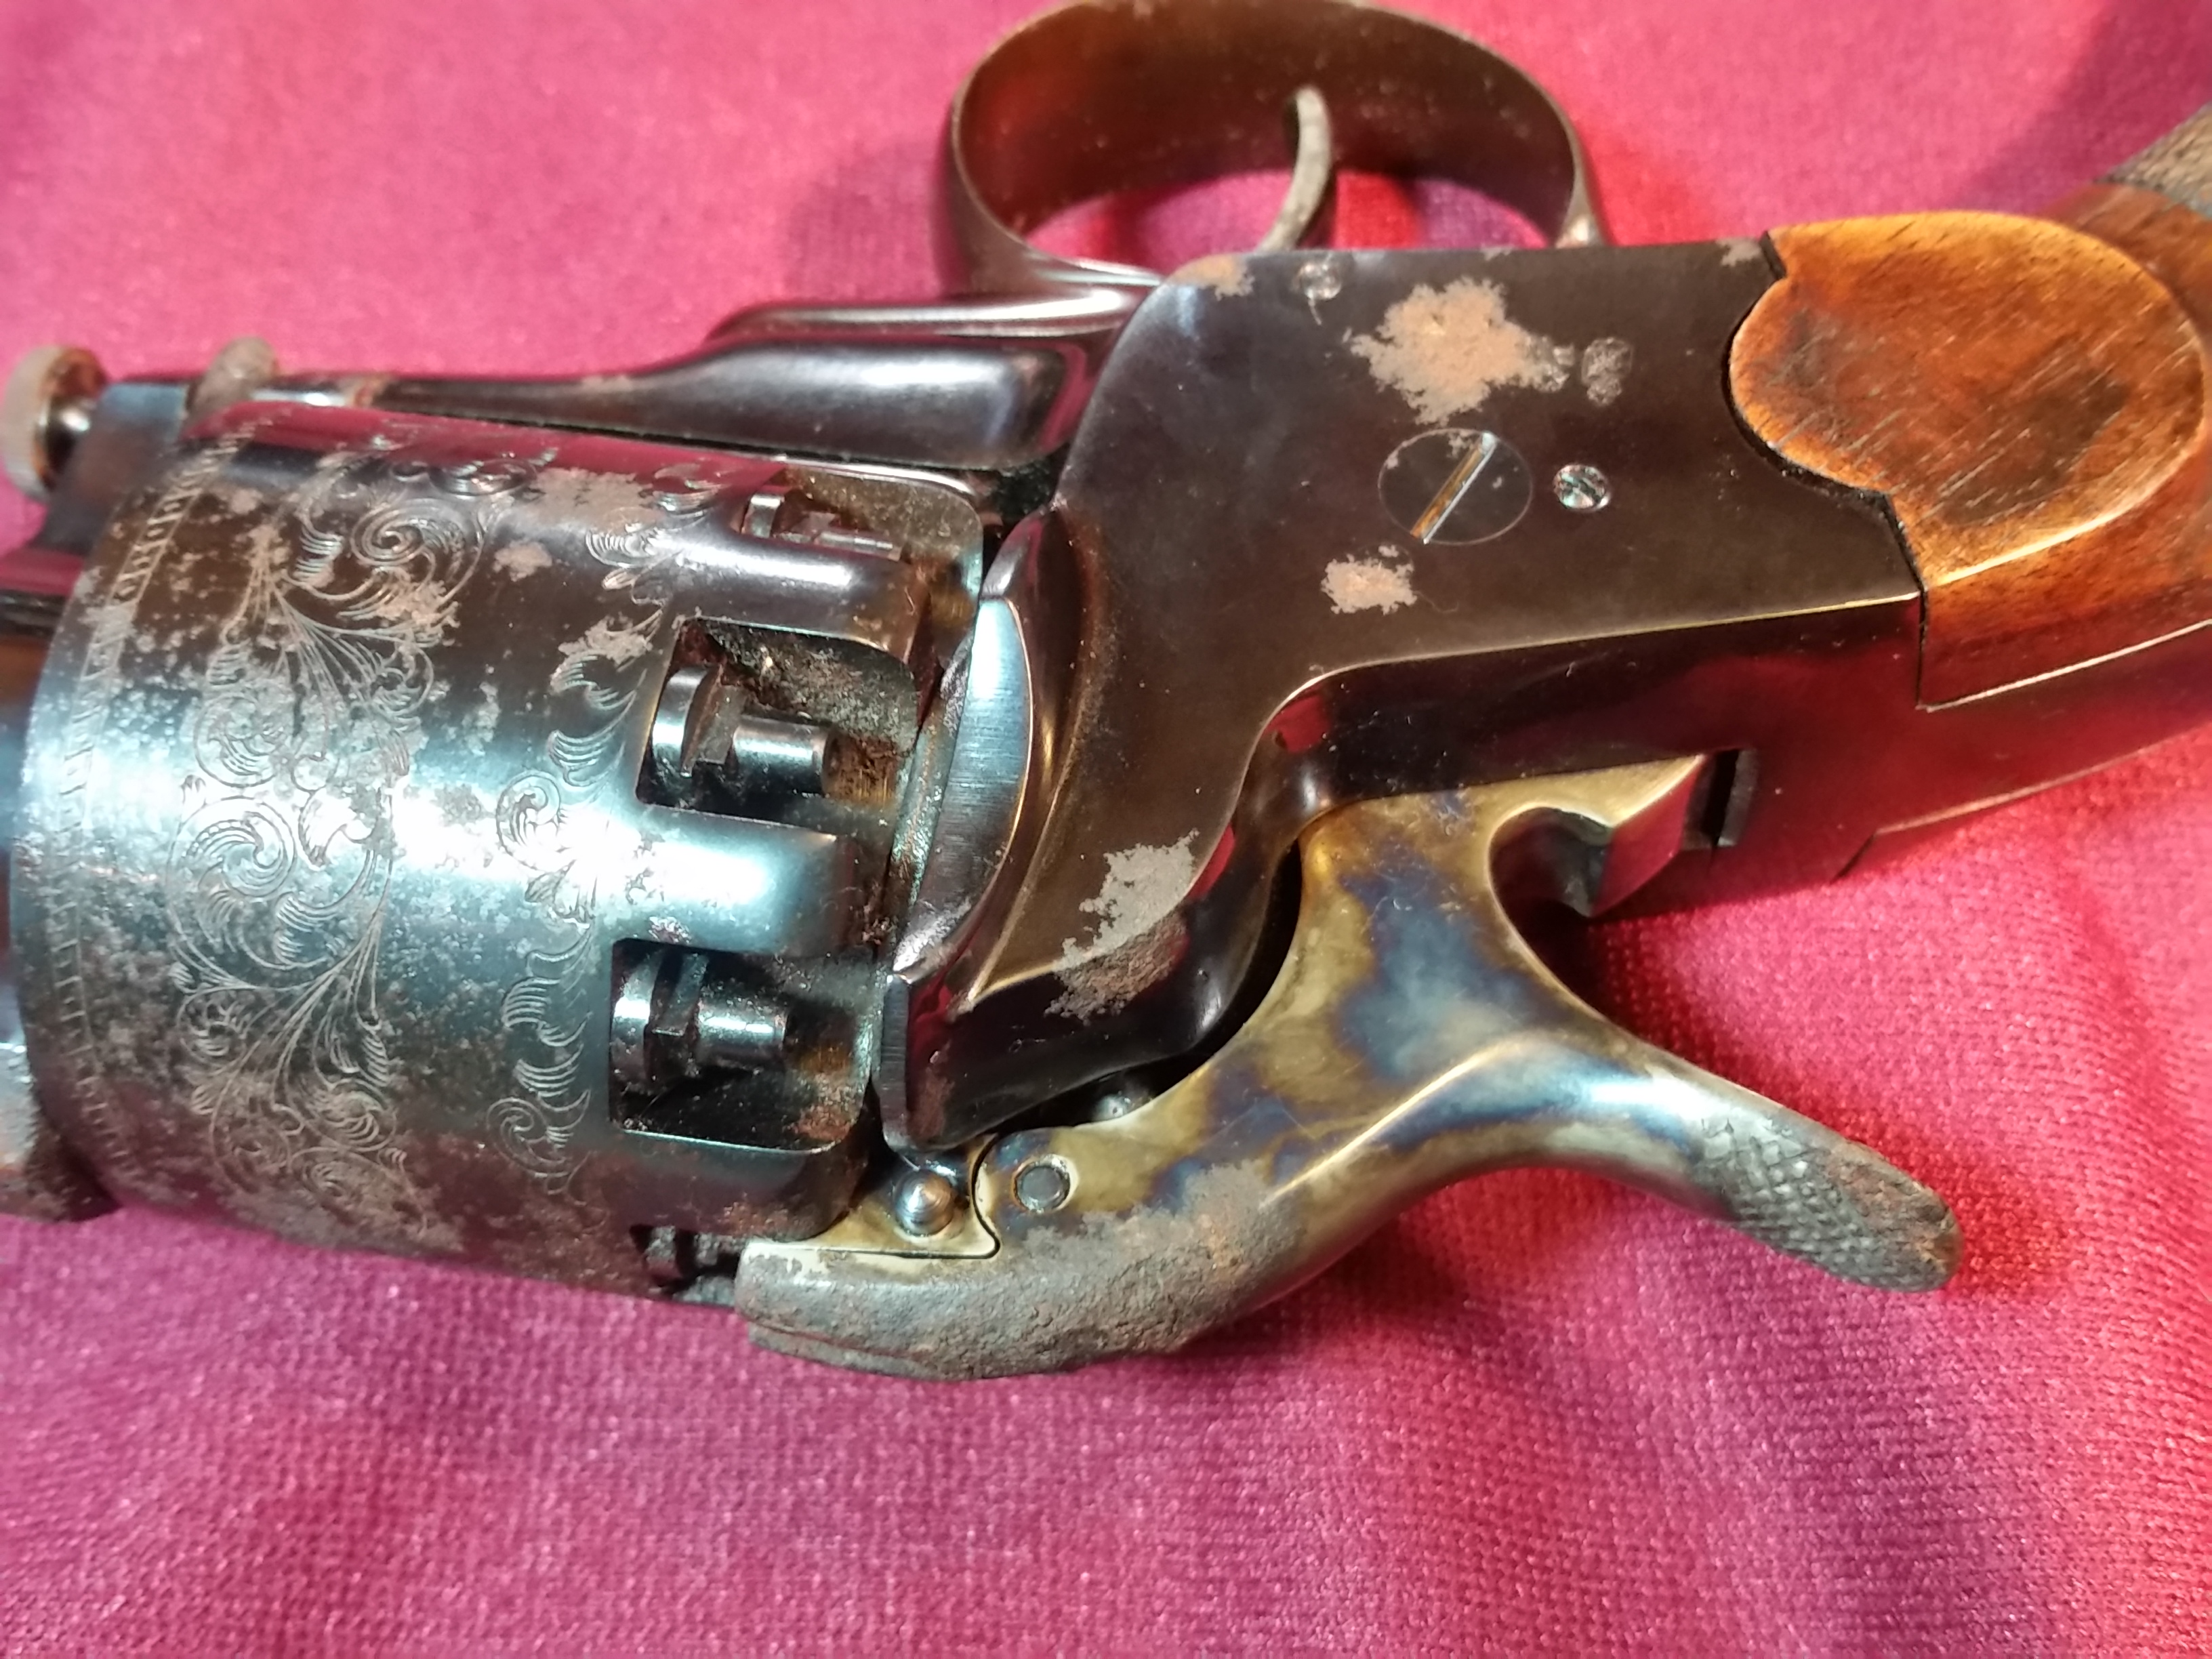 Lemat Revolver Reproduction rusty at Deason's Antique Weapons